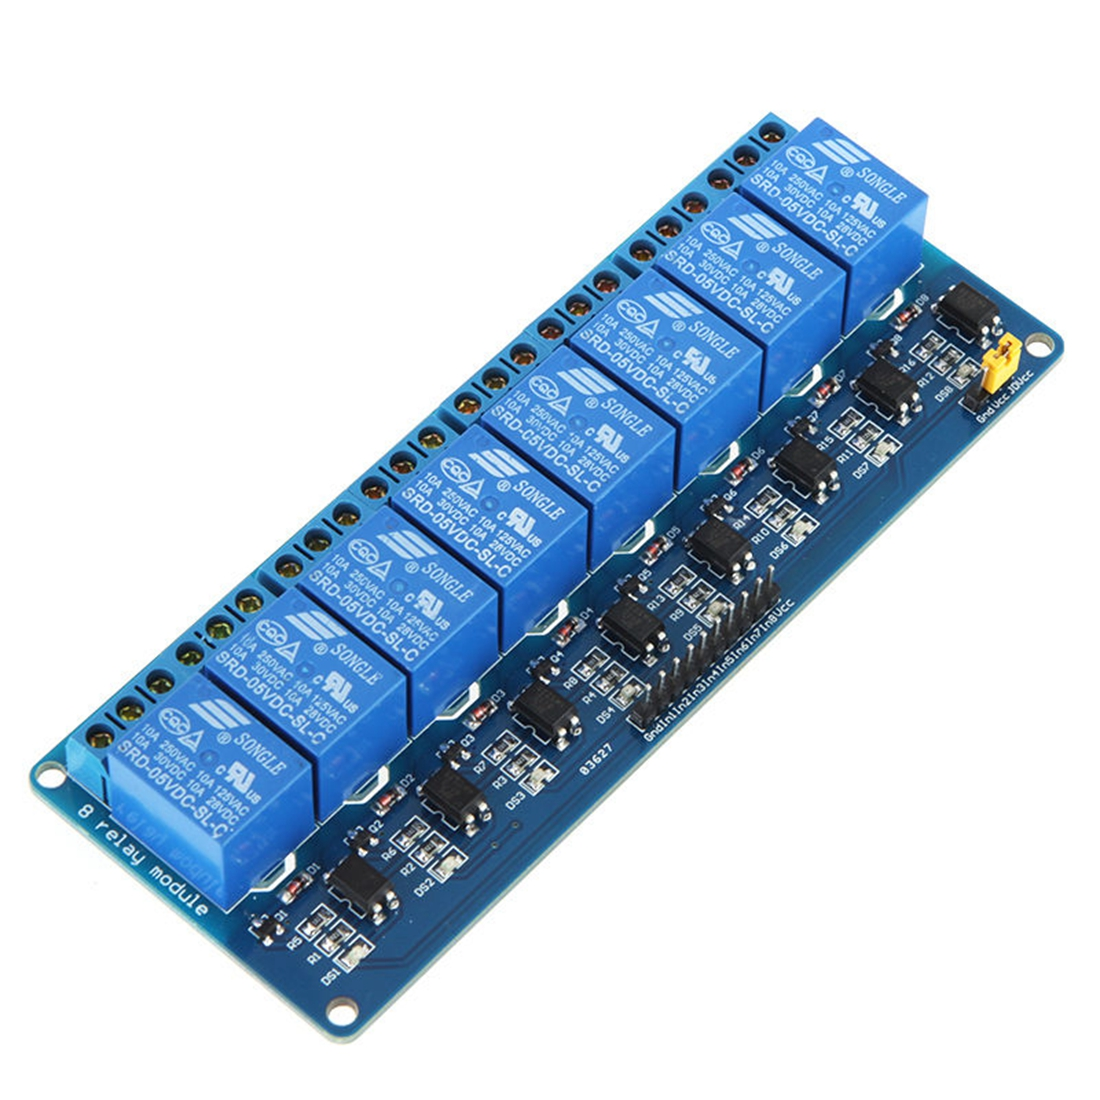 WSFS Hot 5V 8 Channel Relay Module Board For AVR PIC MCU DSP ARM 5v 2 channel ir relay shield expansion board module for arduino with infrared remote controller